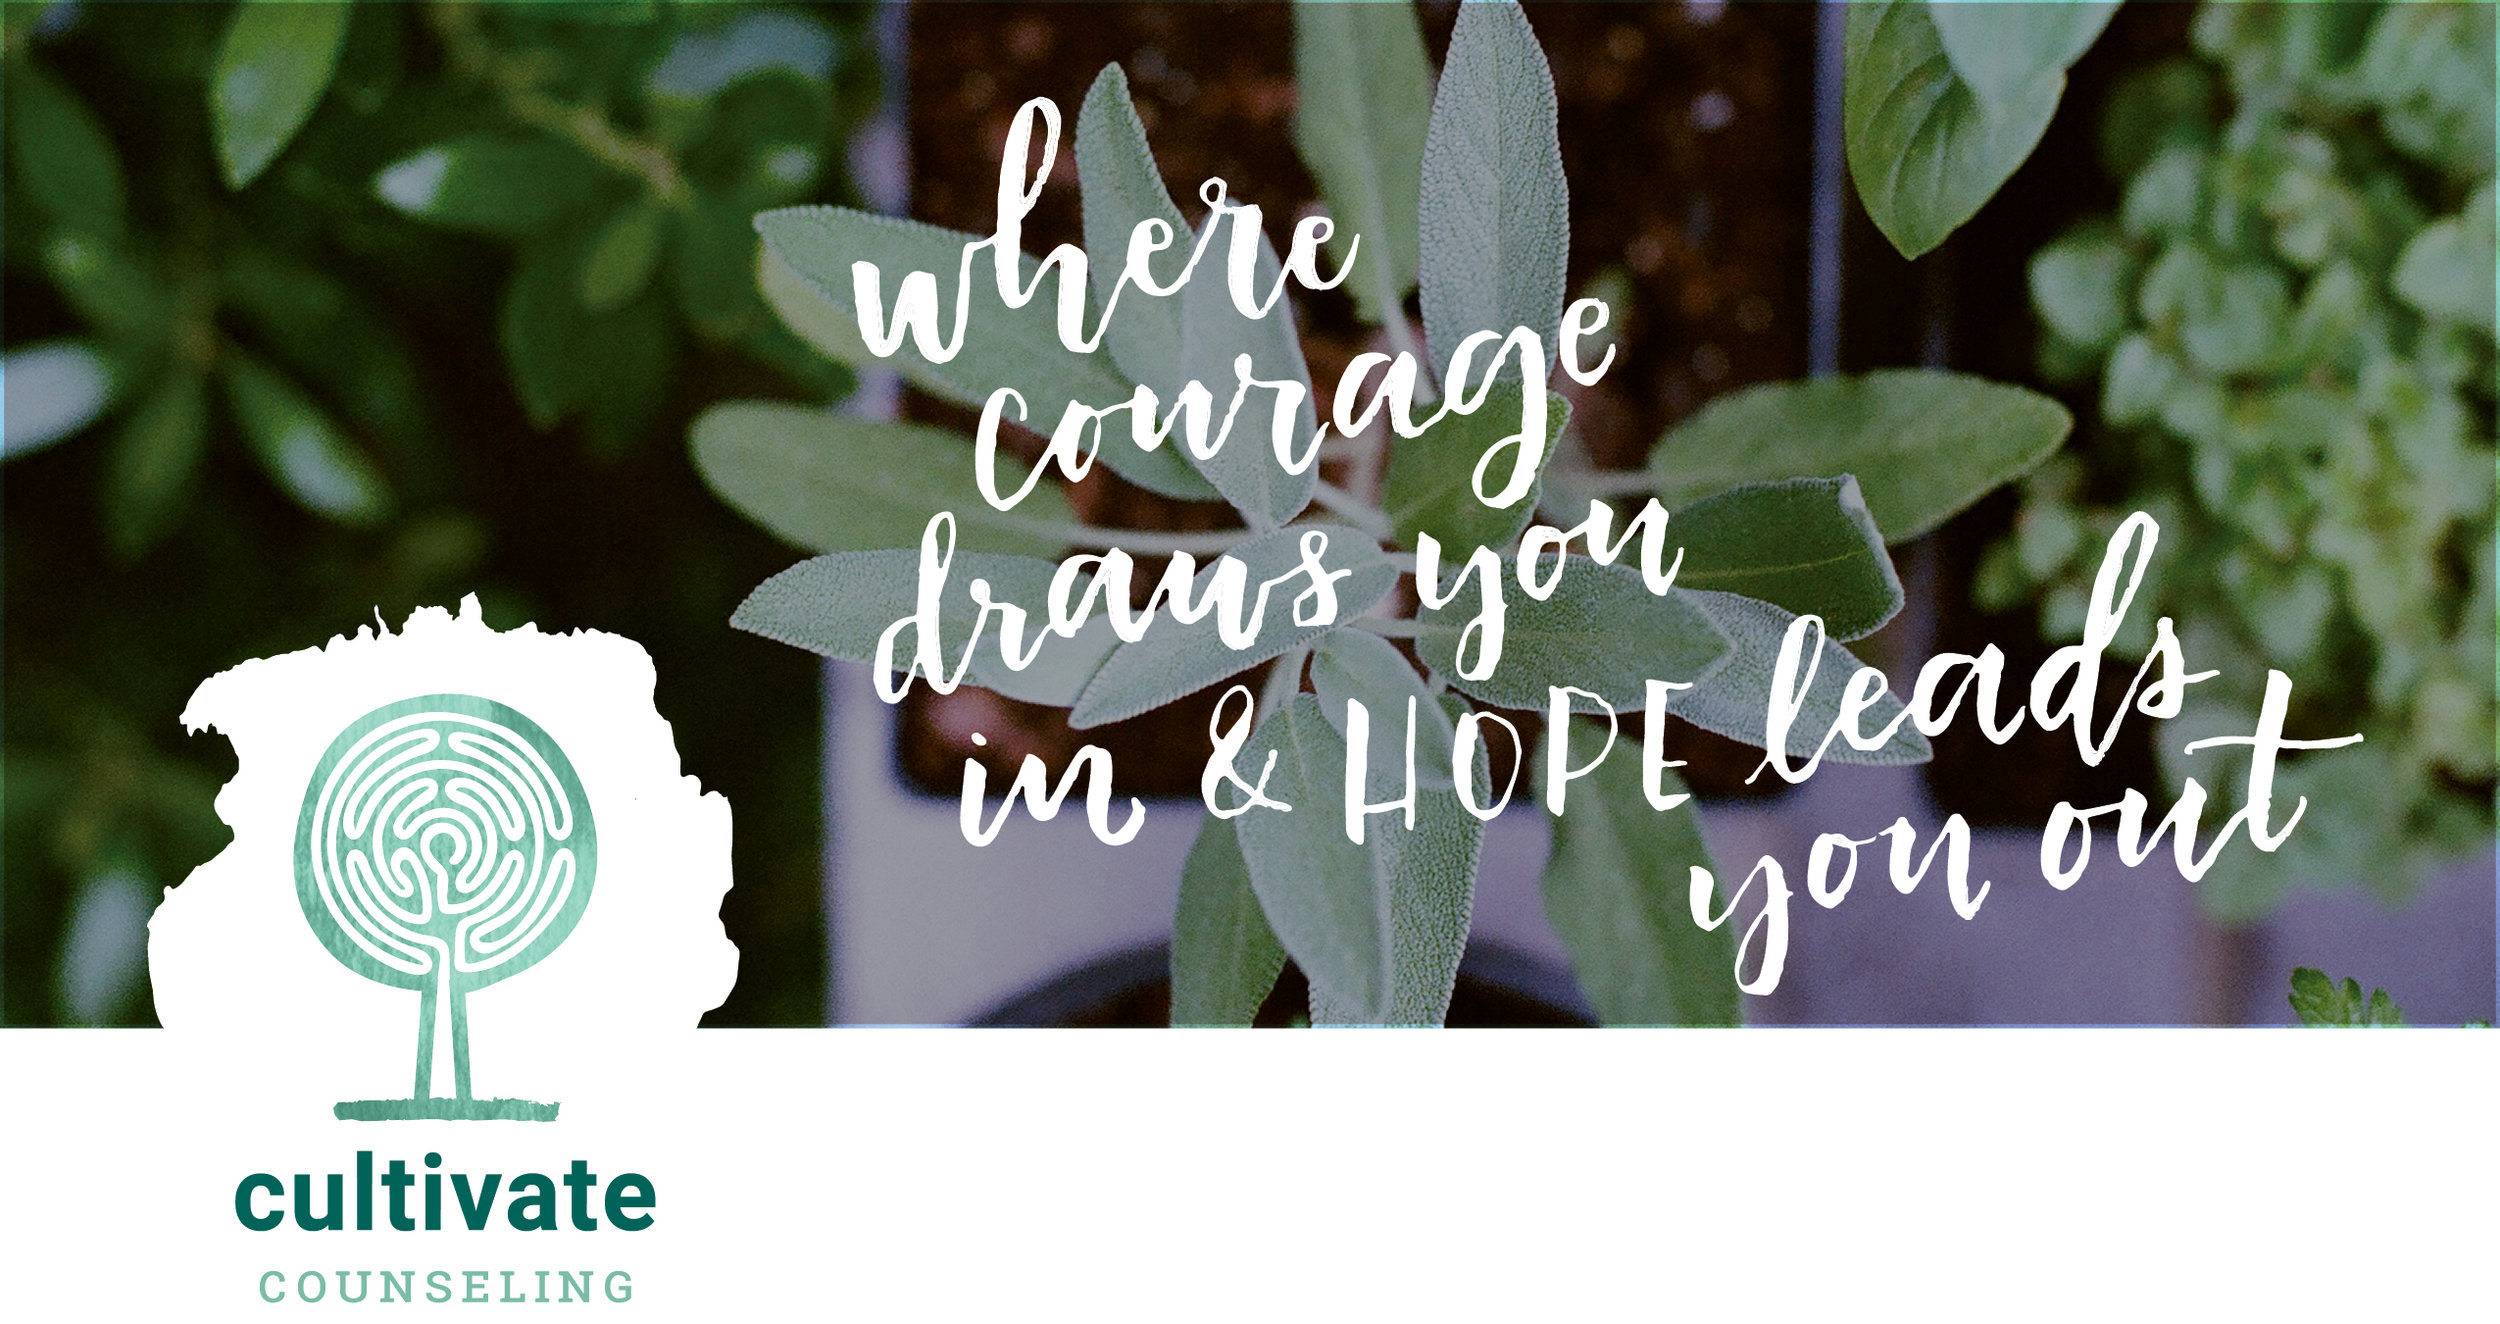 Cultivate counseling, counseling services with courage and hope